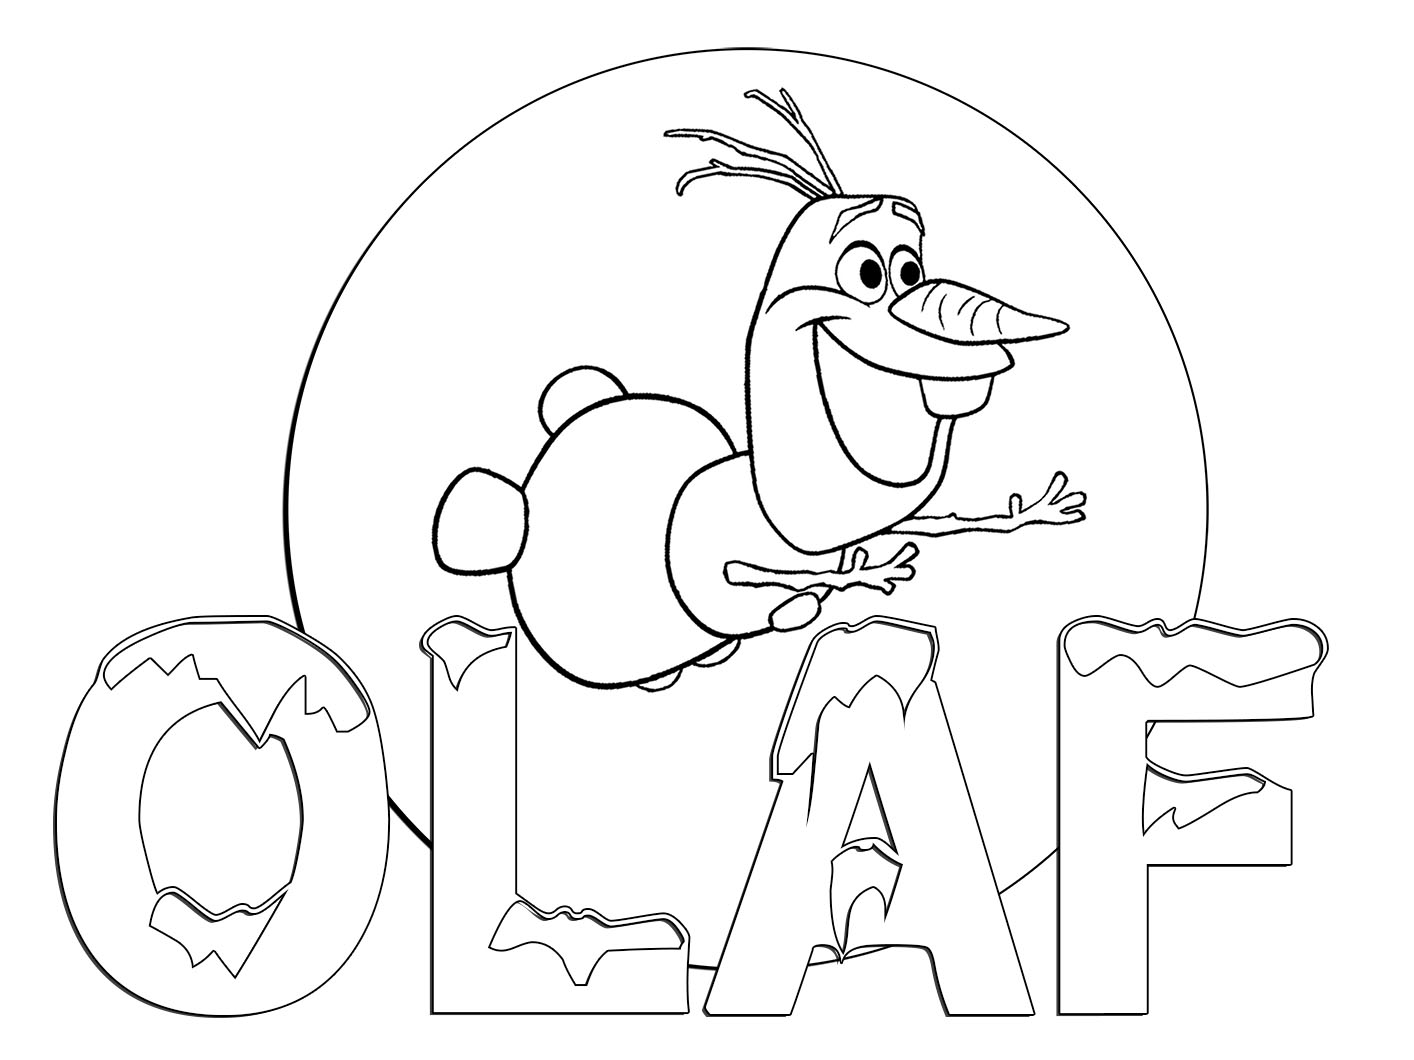 kids fun coloring pages printables - photo#16